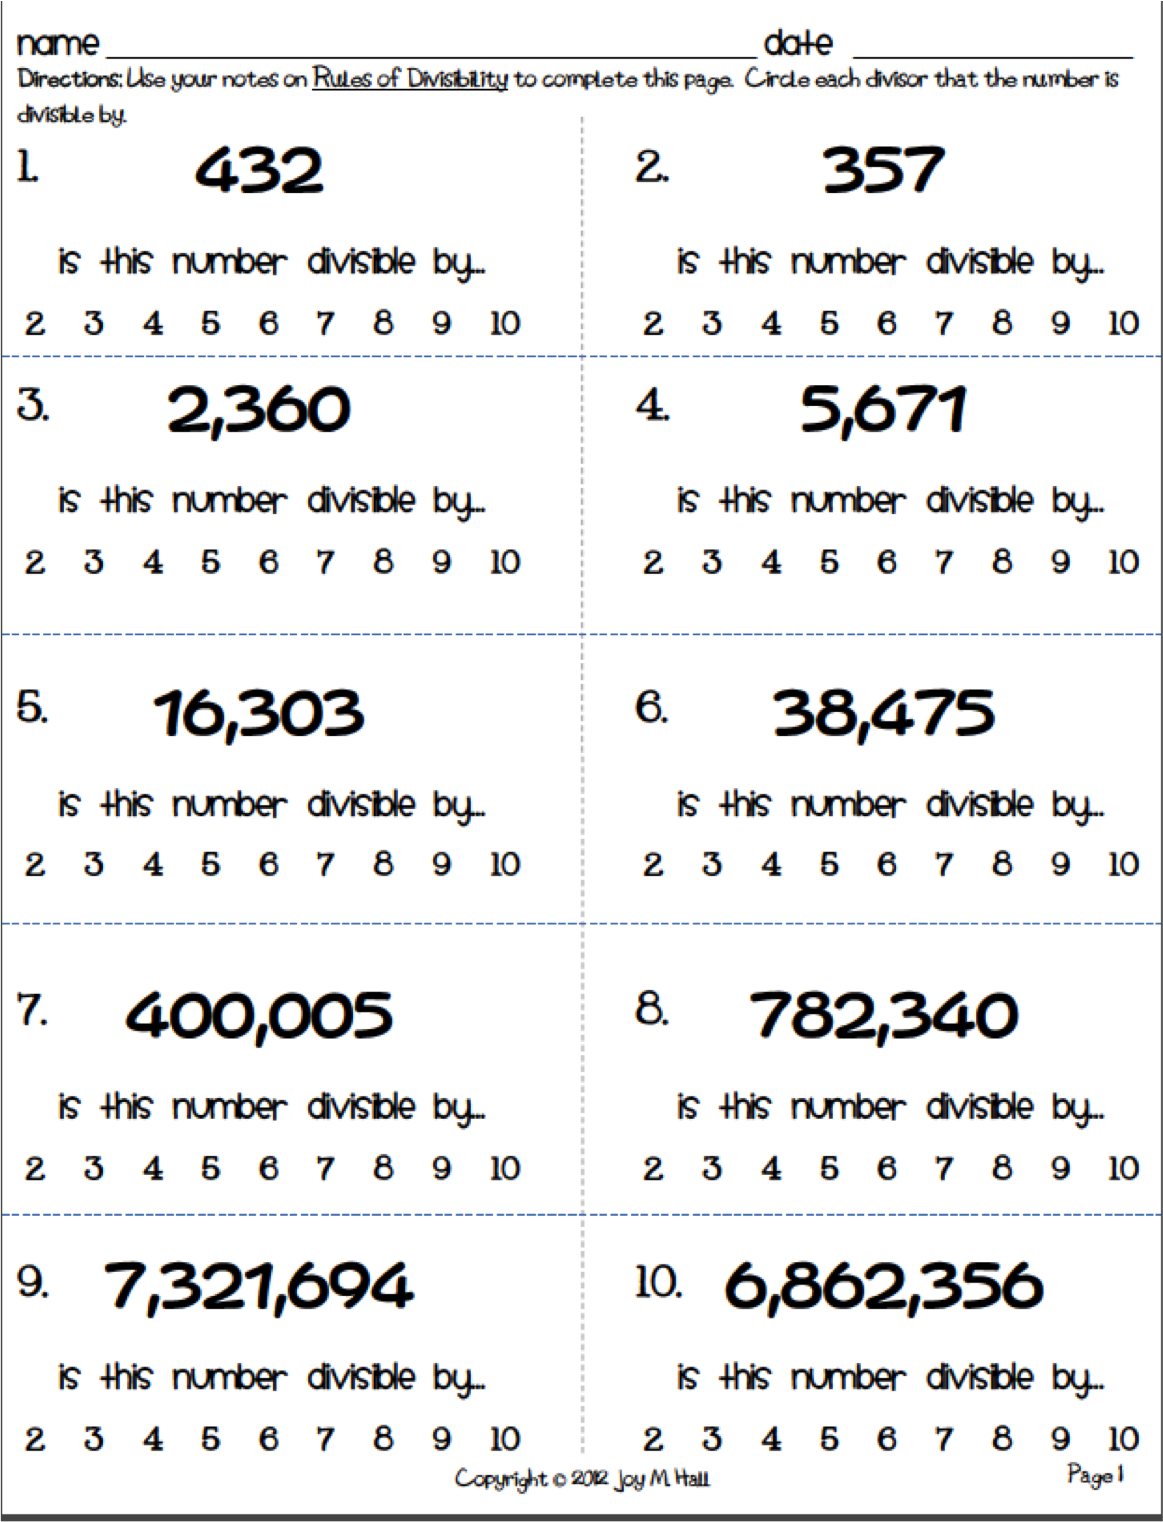 Worksheet 12241584 Divisibility Rules Worksheets Divisibility – Divisibility Tests Worksheet